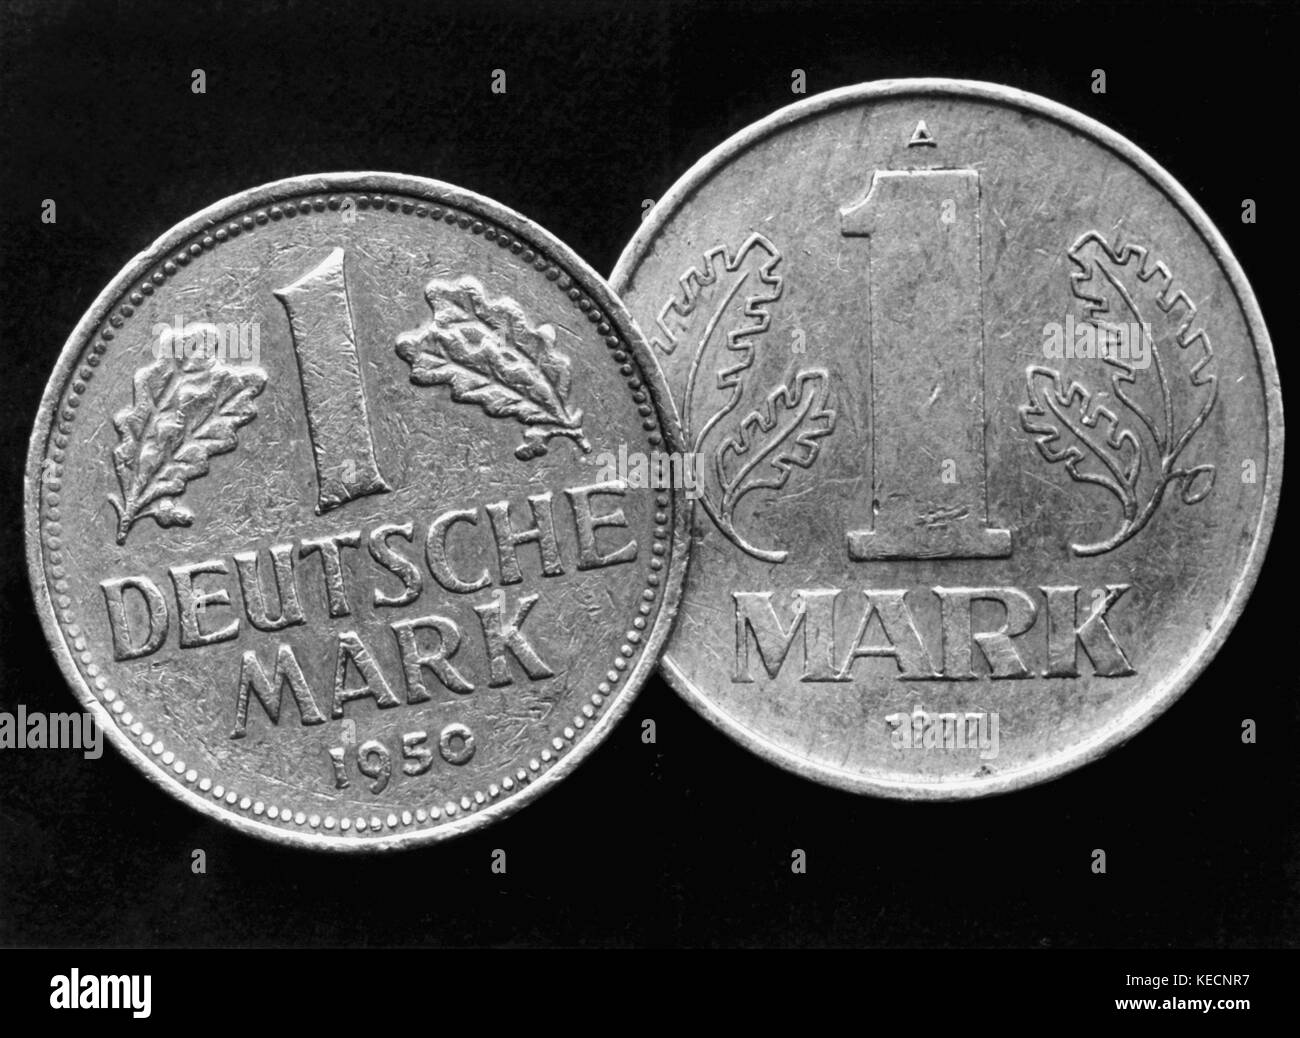 East german money stock photos east german money stock images two currencies front side of west german mark on the left and east buycottarizona